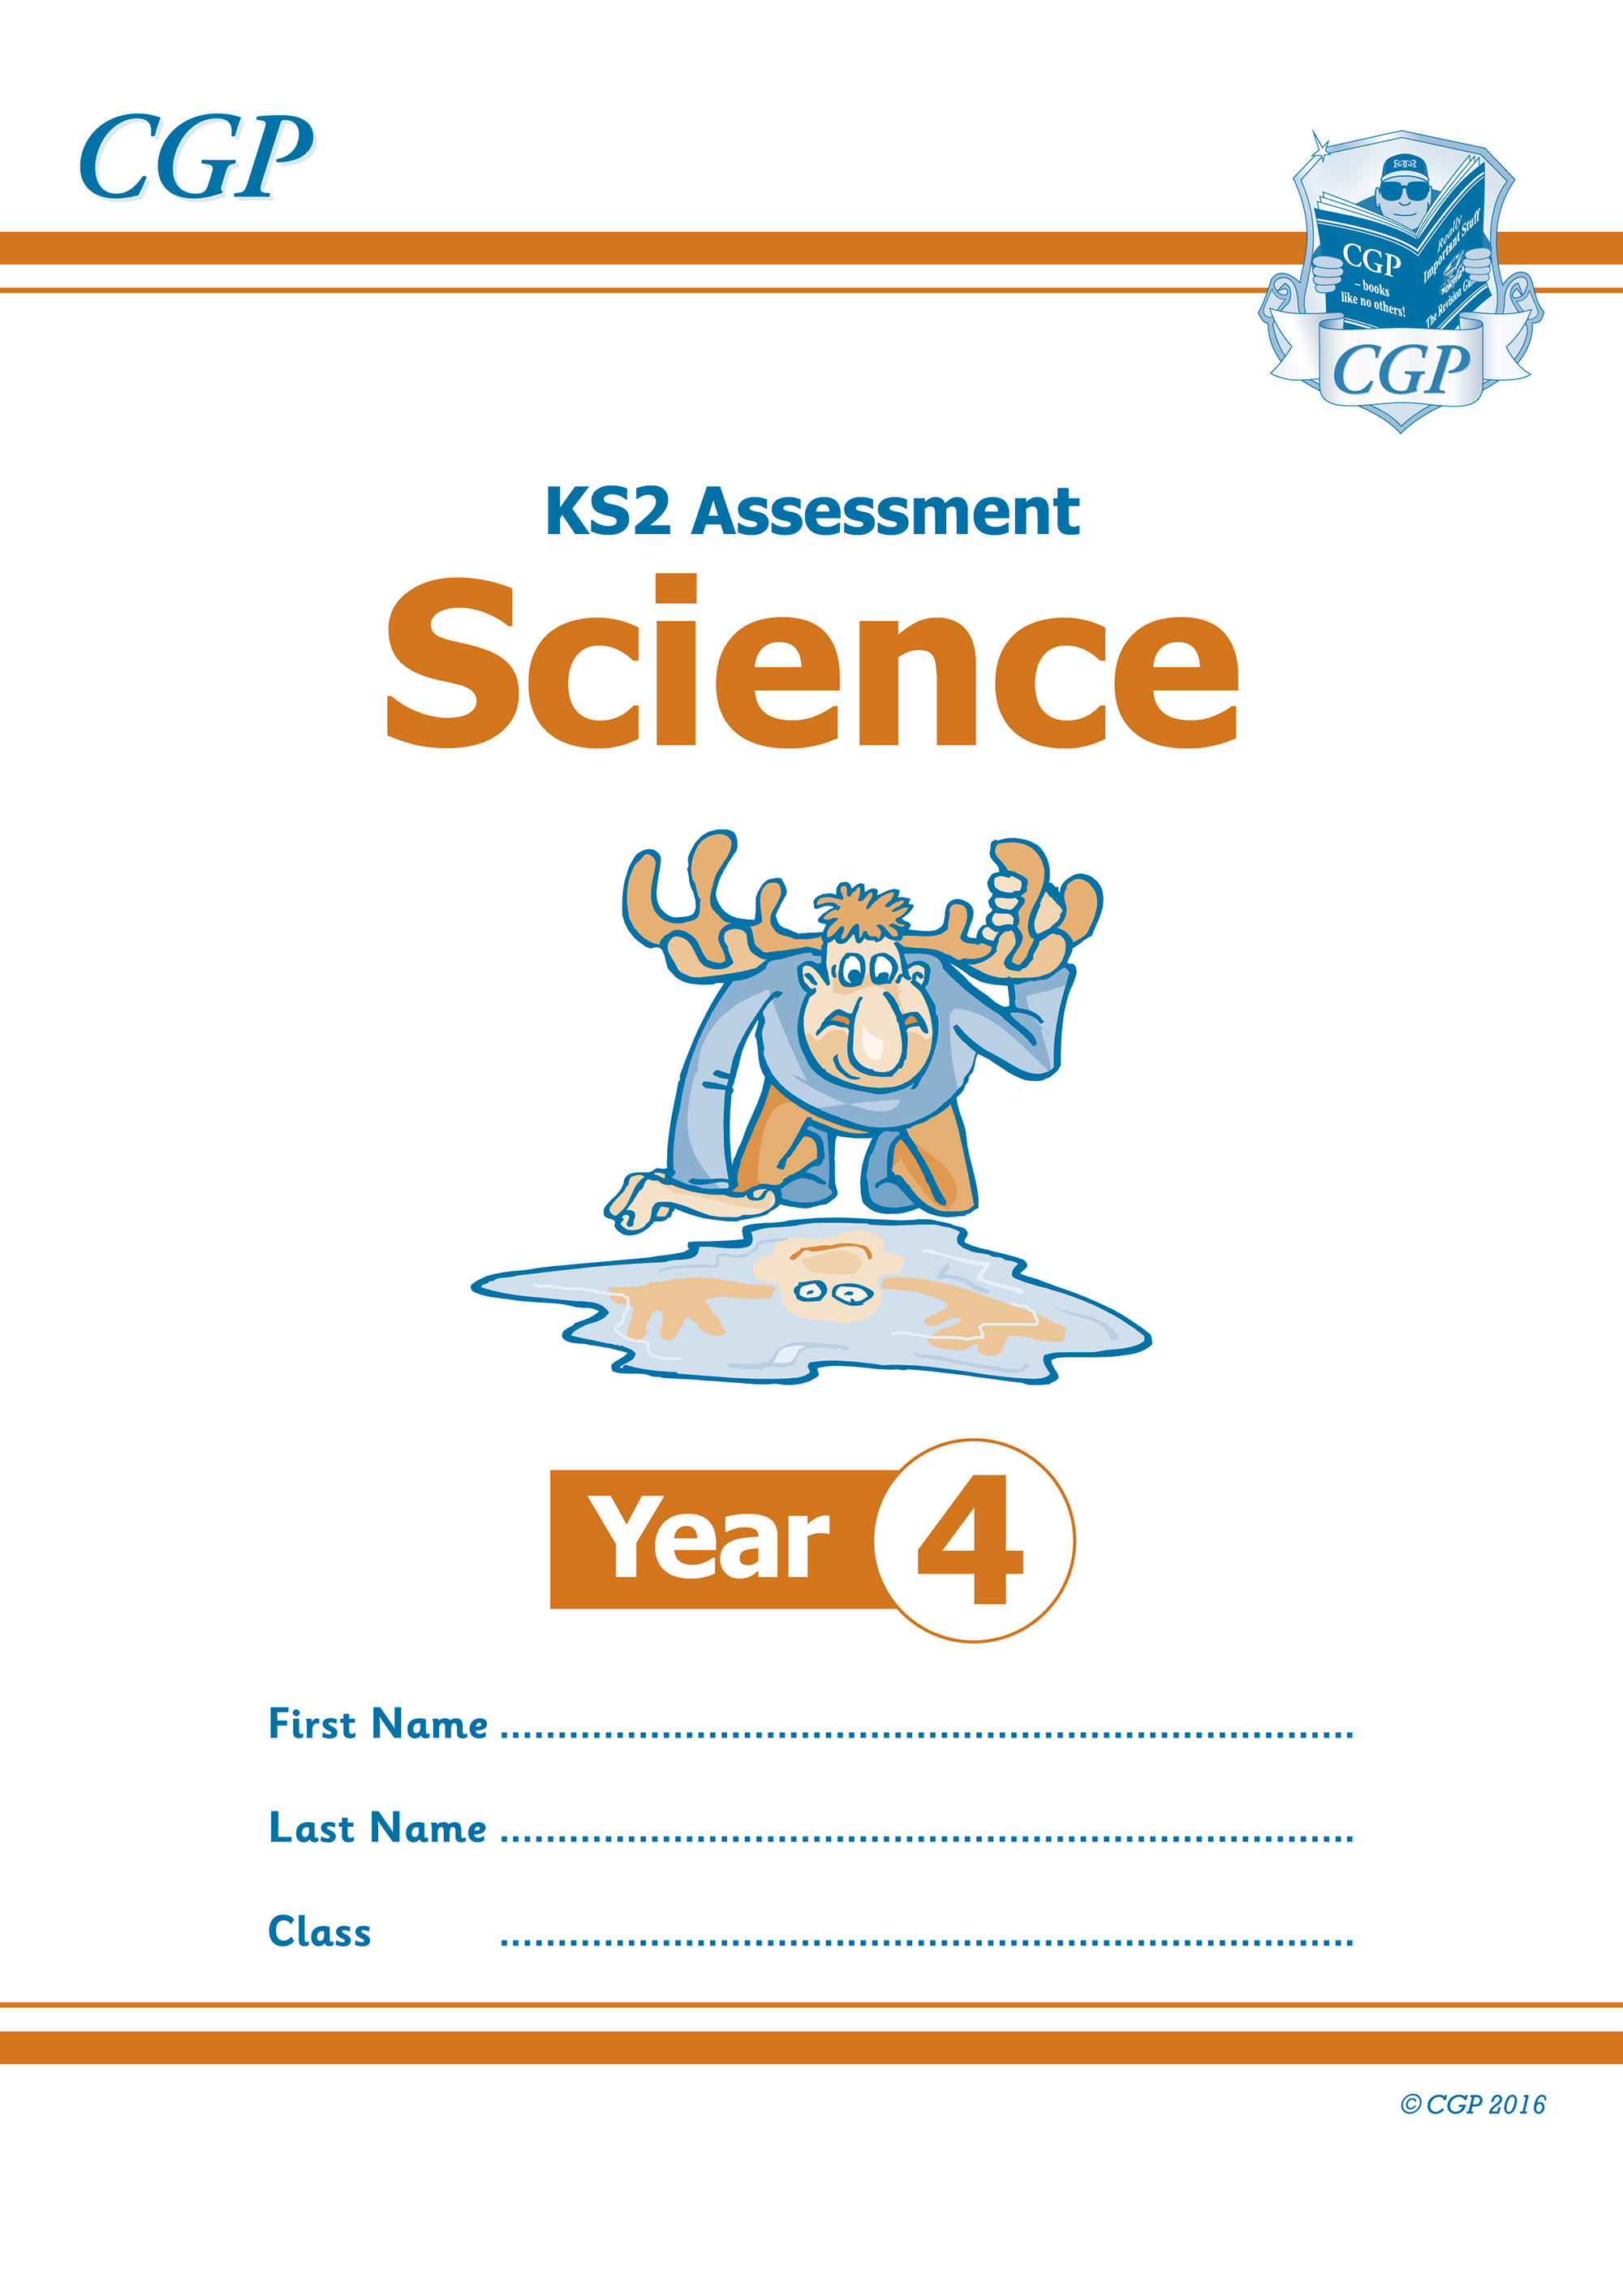 S4P21 - New KS2 Assessment: Science - Year 4 Test